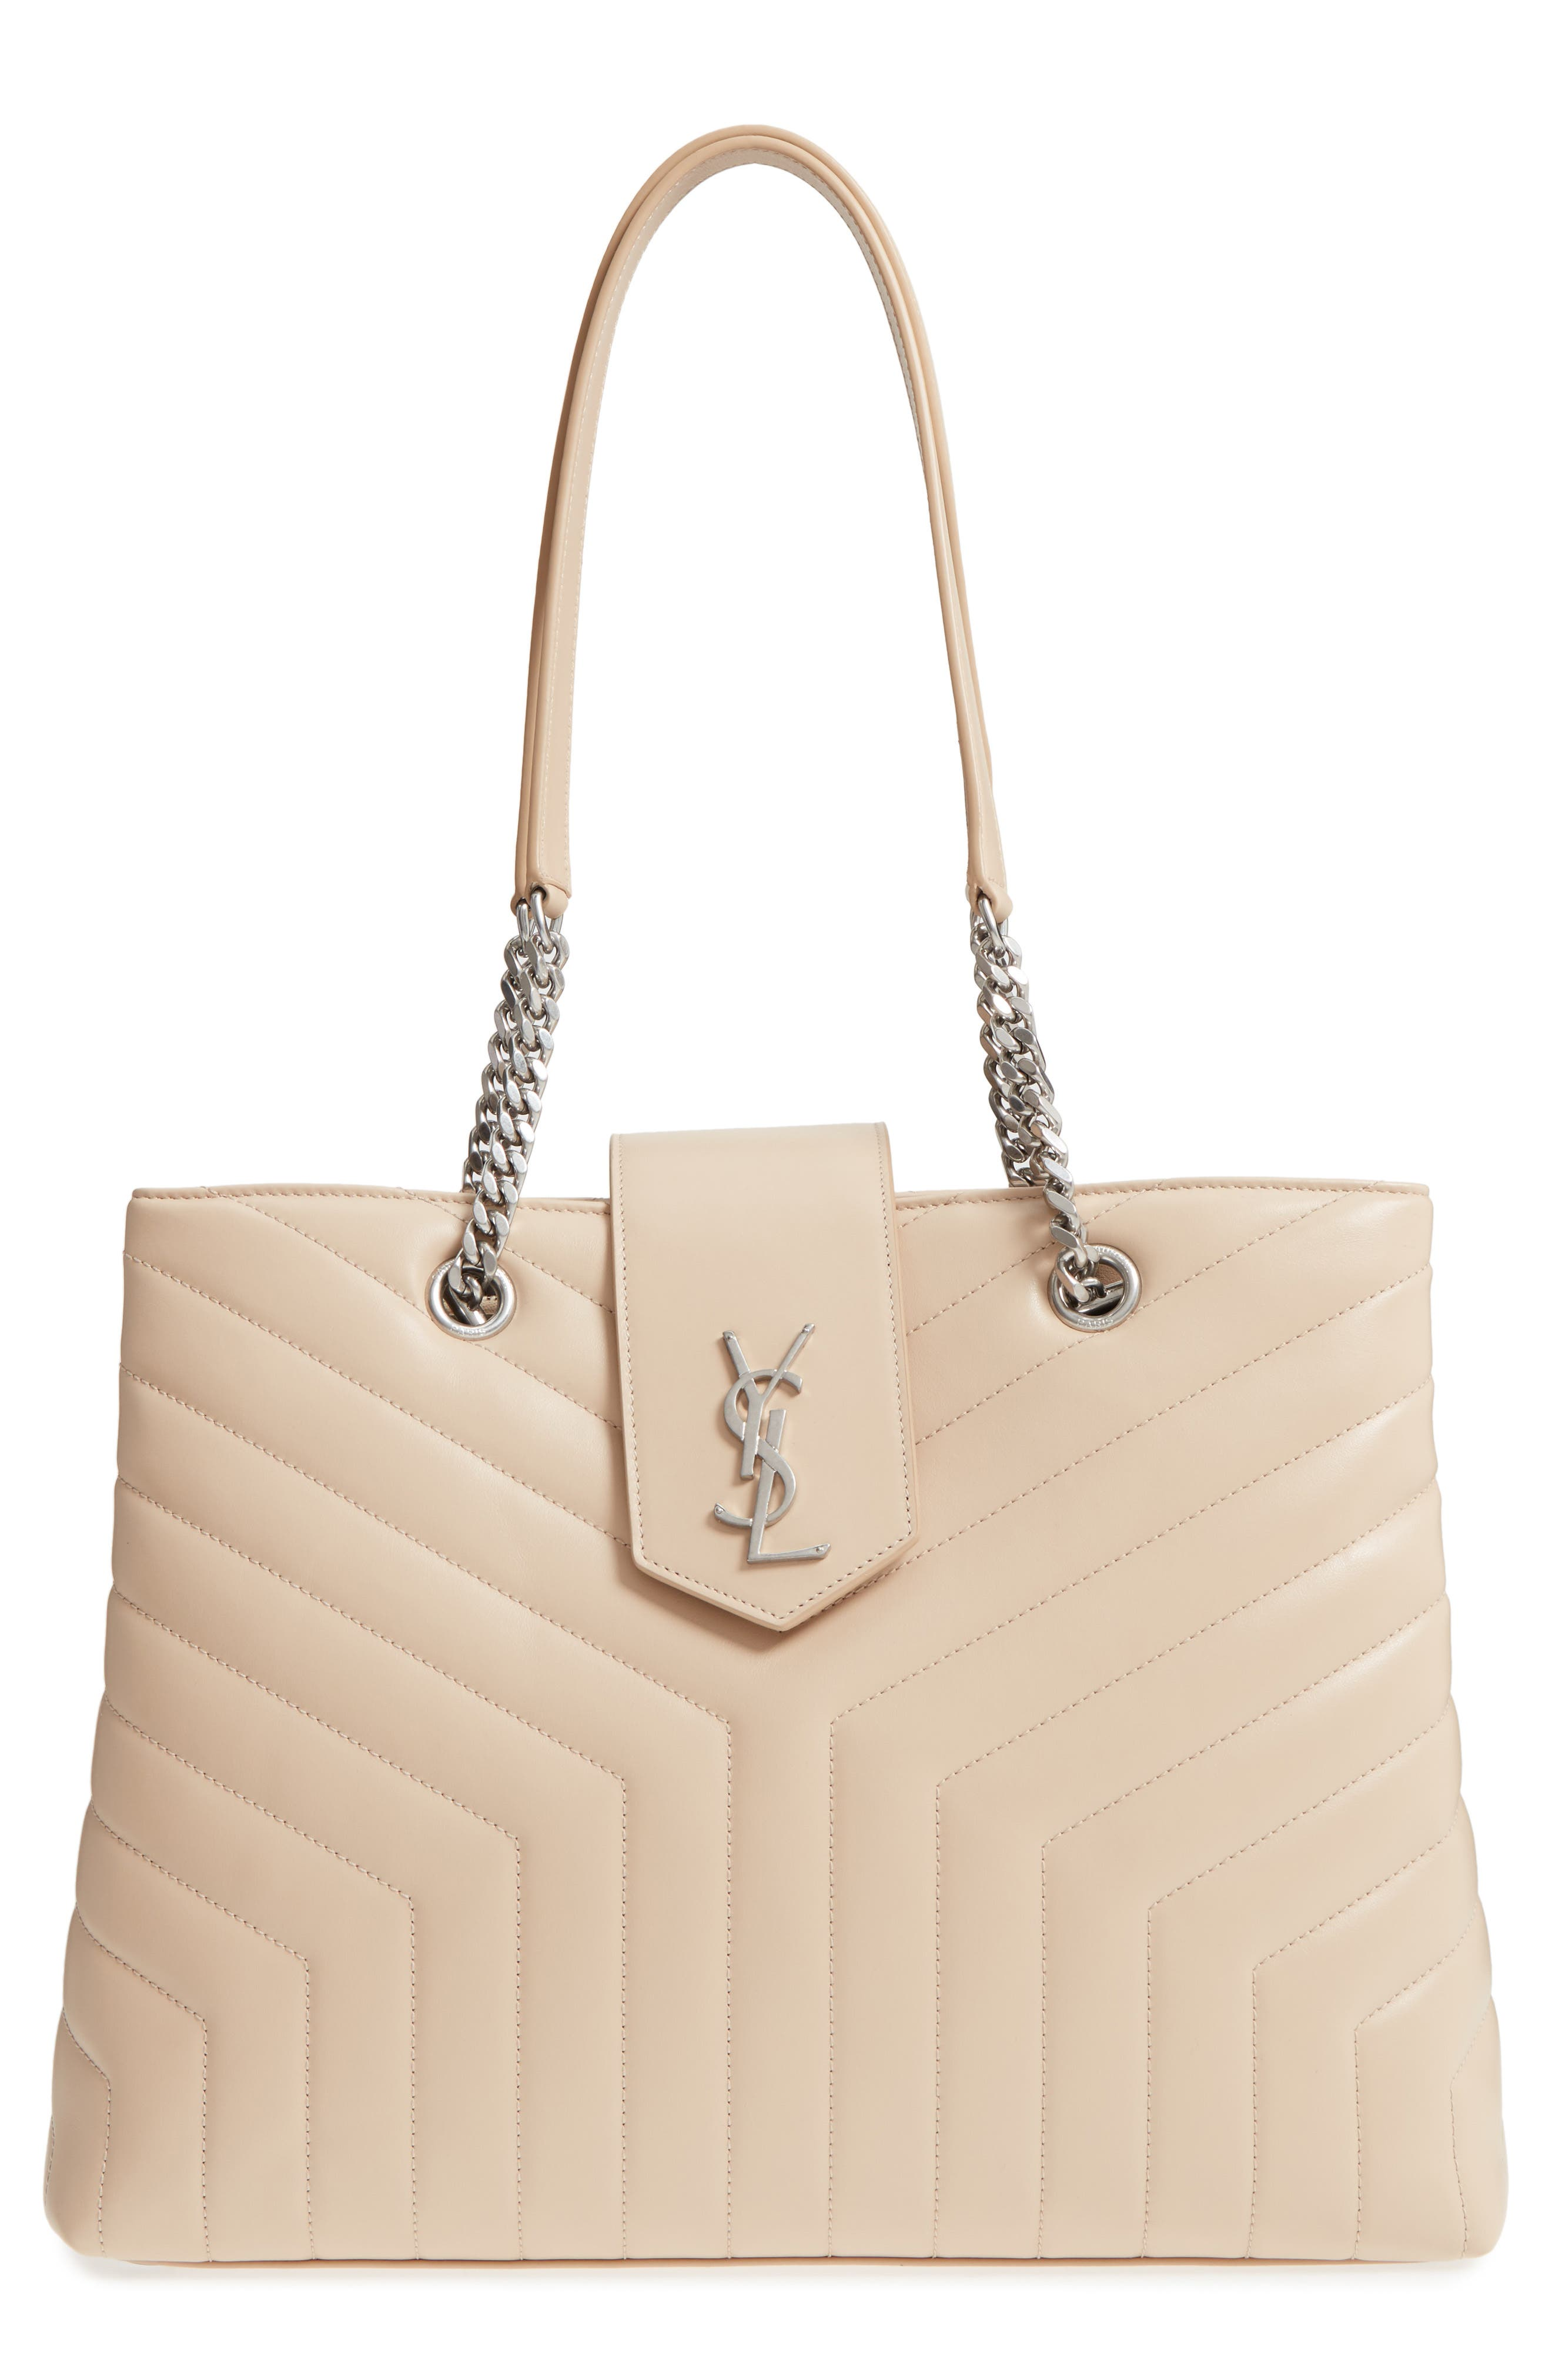 Large Loulou Matelassé Leather Shopper,                         Main,                         color, Nude Powder/ Nude Powder